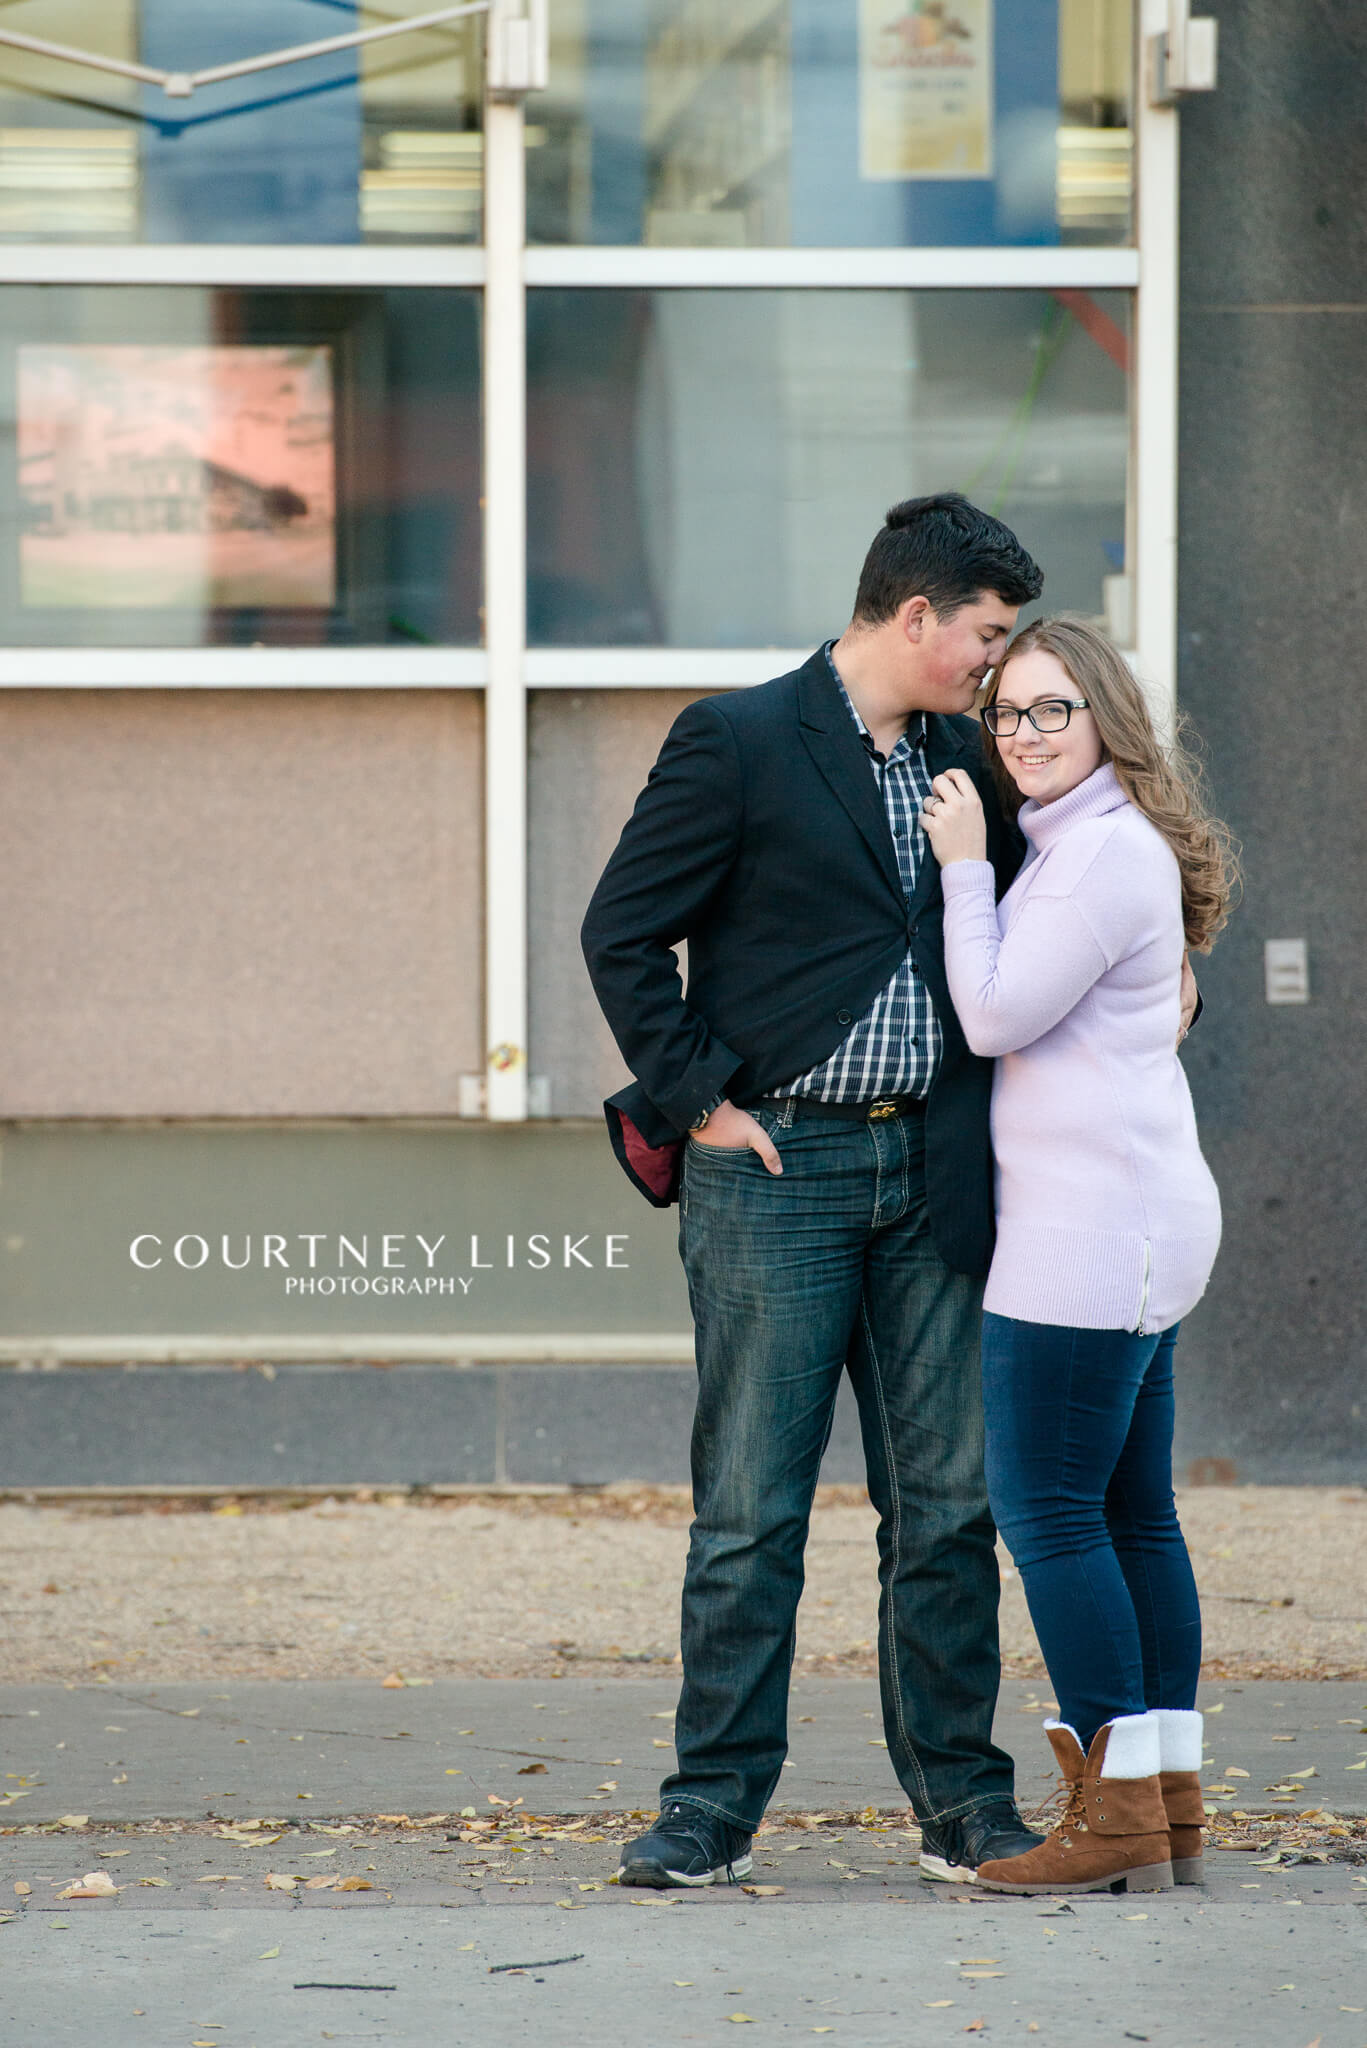 Luke Tori Engagement Courtney Liske Photography Blazer Black Woman In Purple Sweater And Man A Stand Together Outside The Regina Public